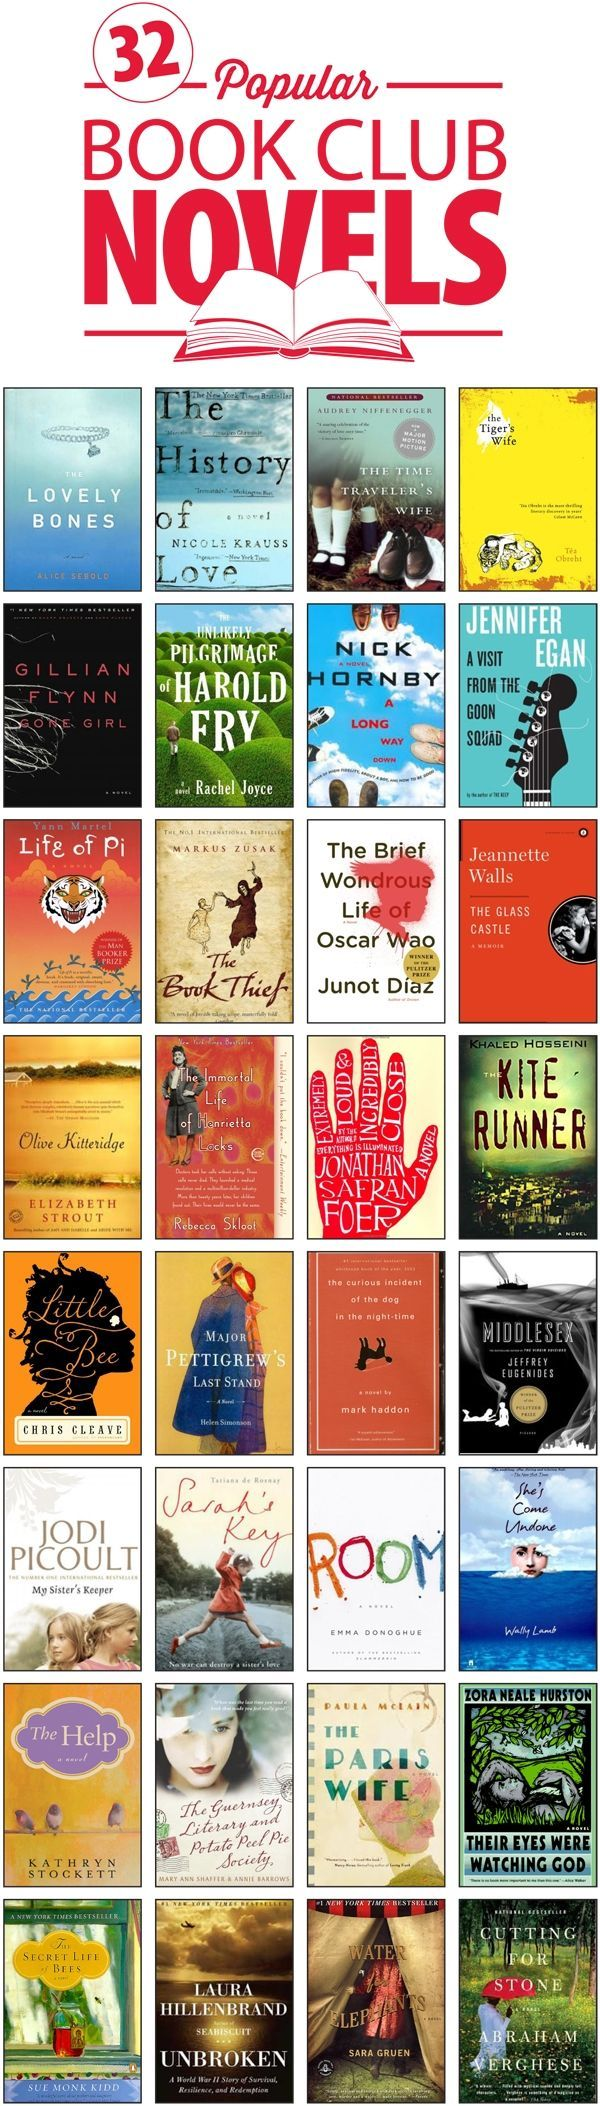 I've read many of these. Might try some others on the list.